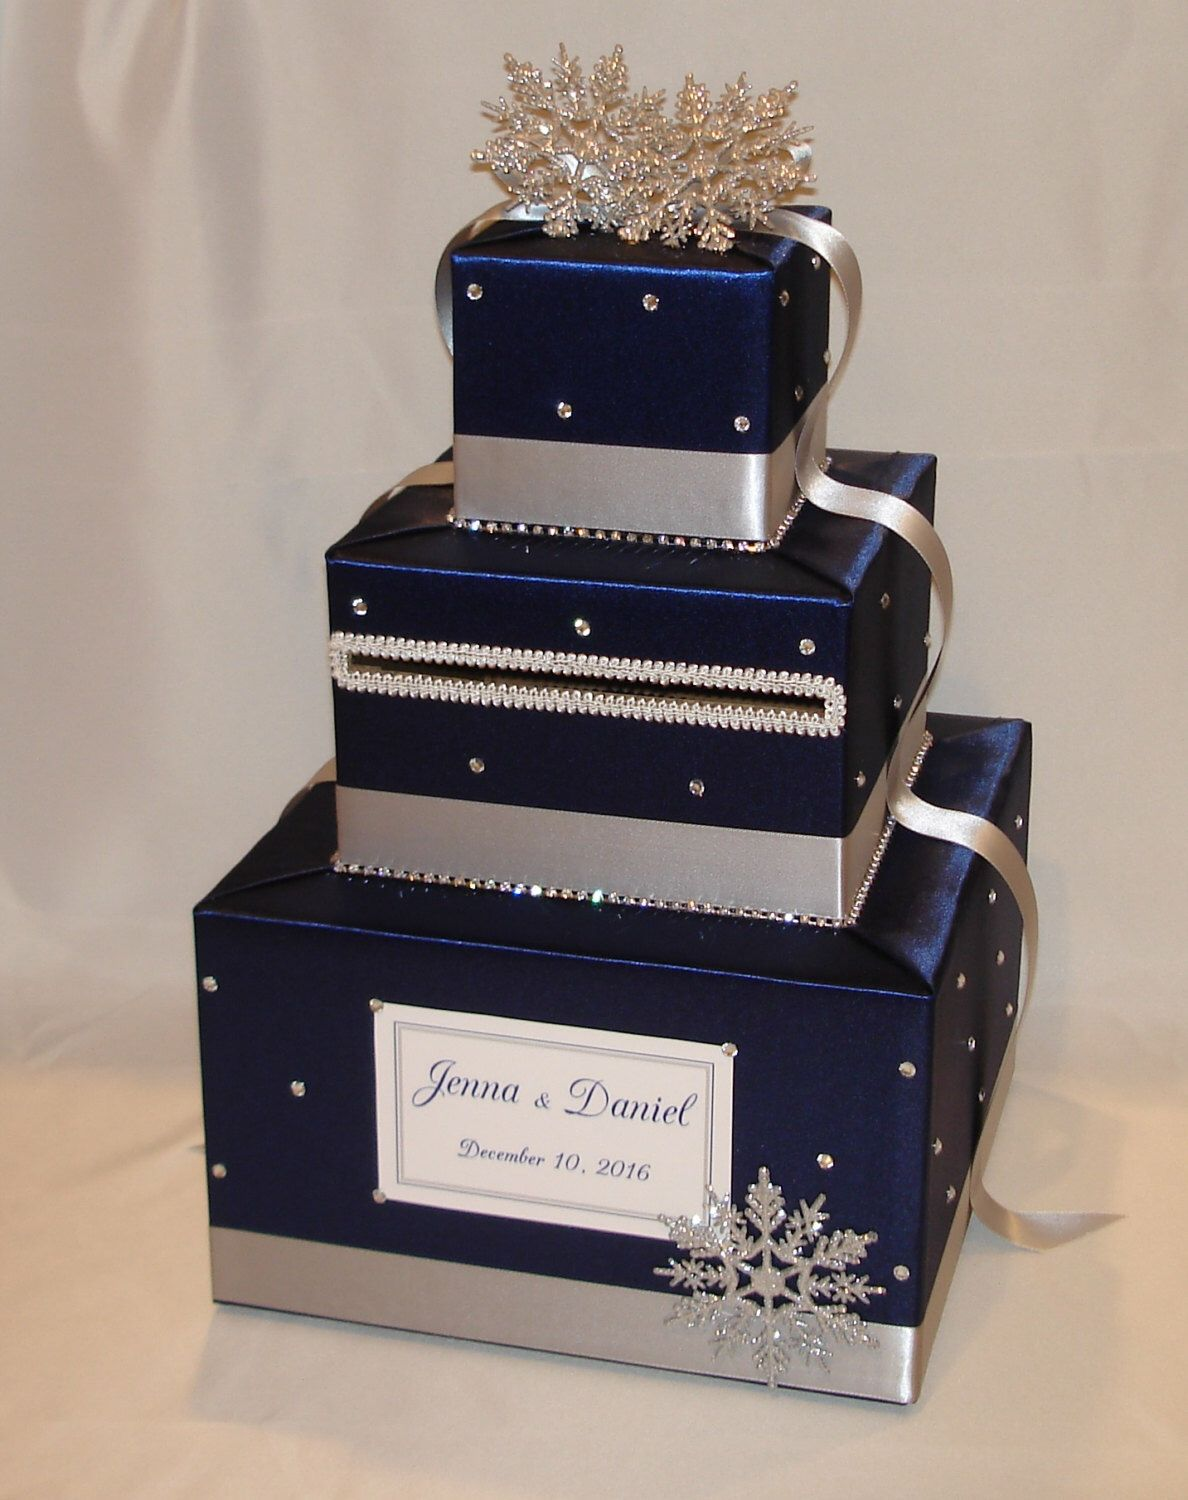 Navy Blue And Silver Winter Snowflake Theme Wedding Card Etsy Card Box Wedding Snowflake Wedding Theme Wedding Card Holder Box